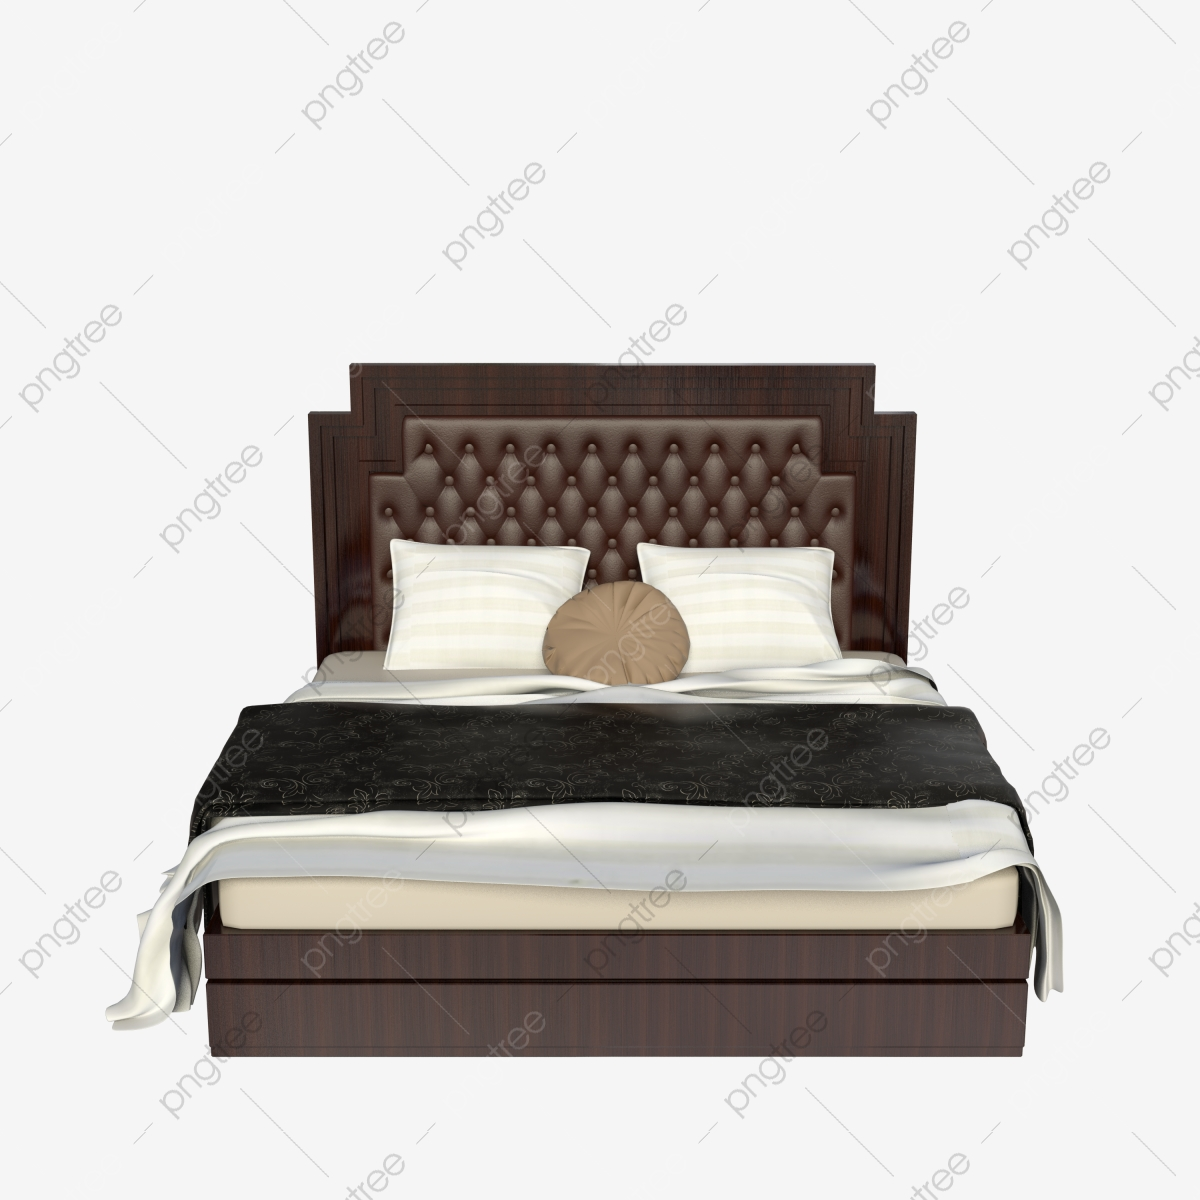 https fr pngtree com freepng one european double bed 4453336 html